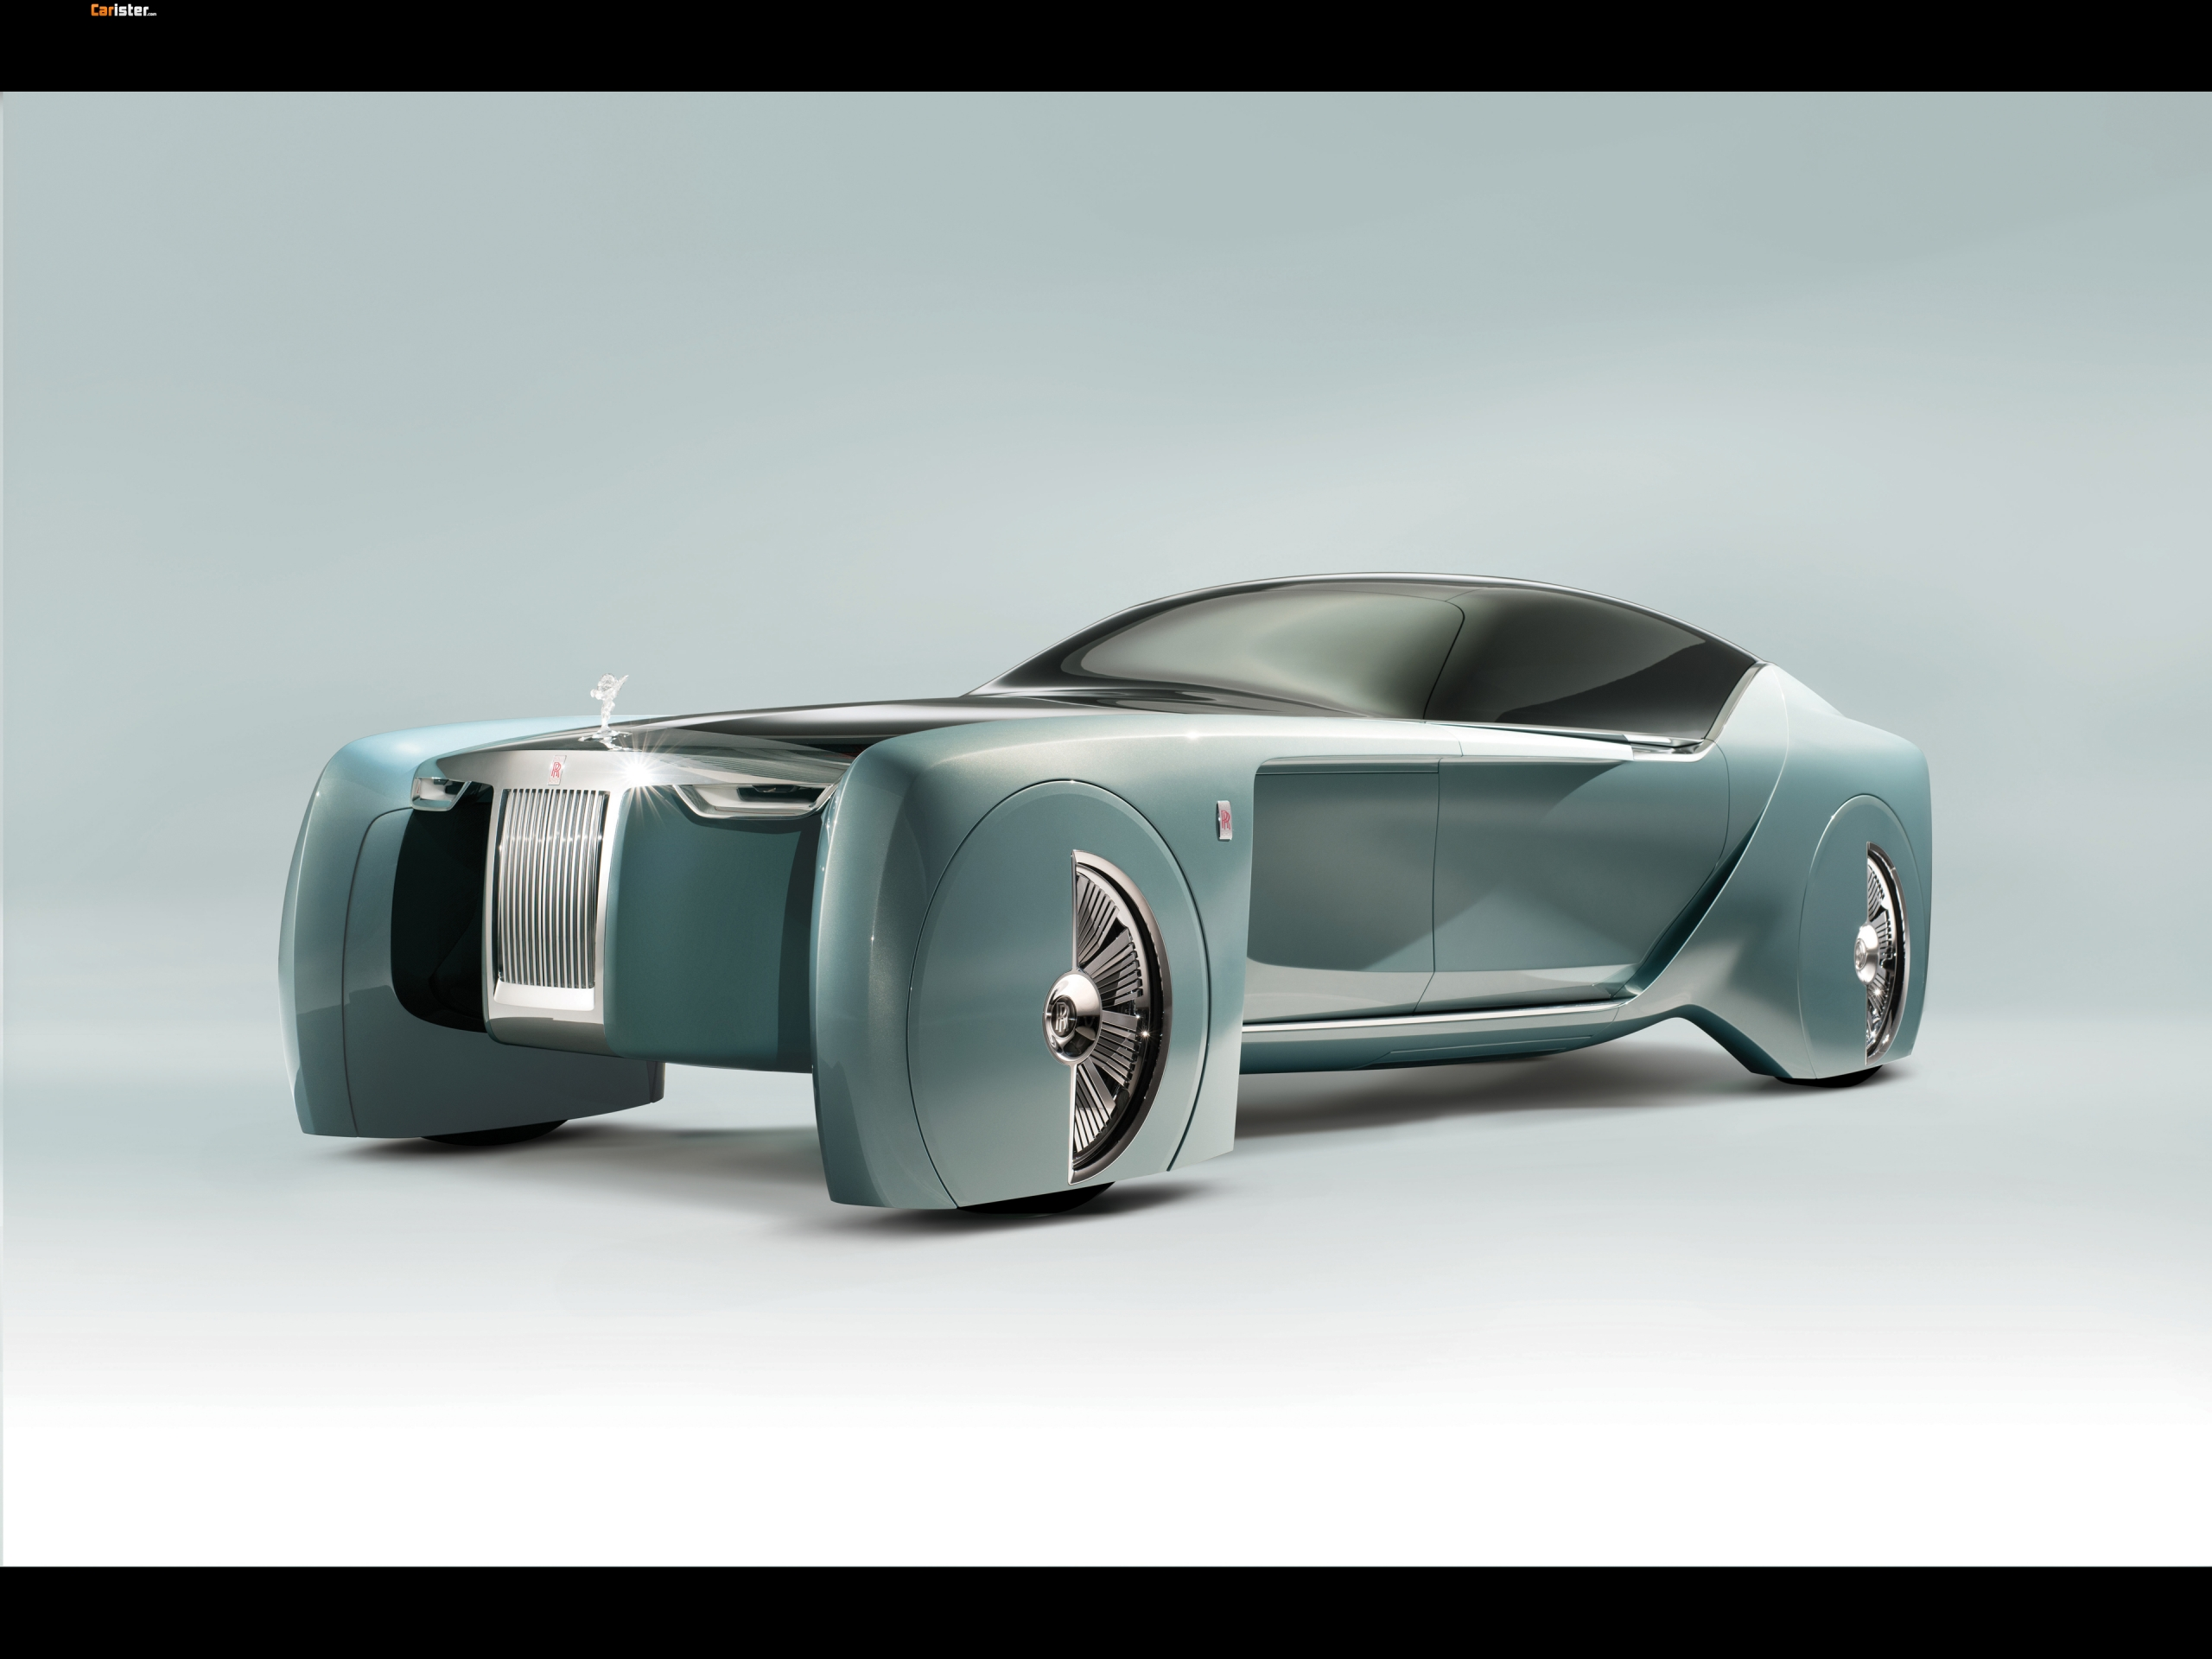 Rolls-Royce Vision Next 100 Concept 2016 - Photo 15 - Taille: 2560x1920